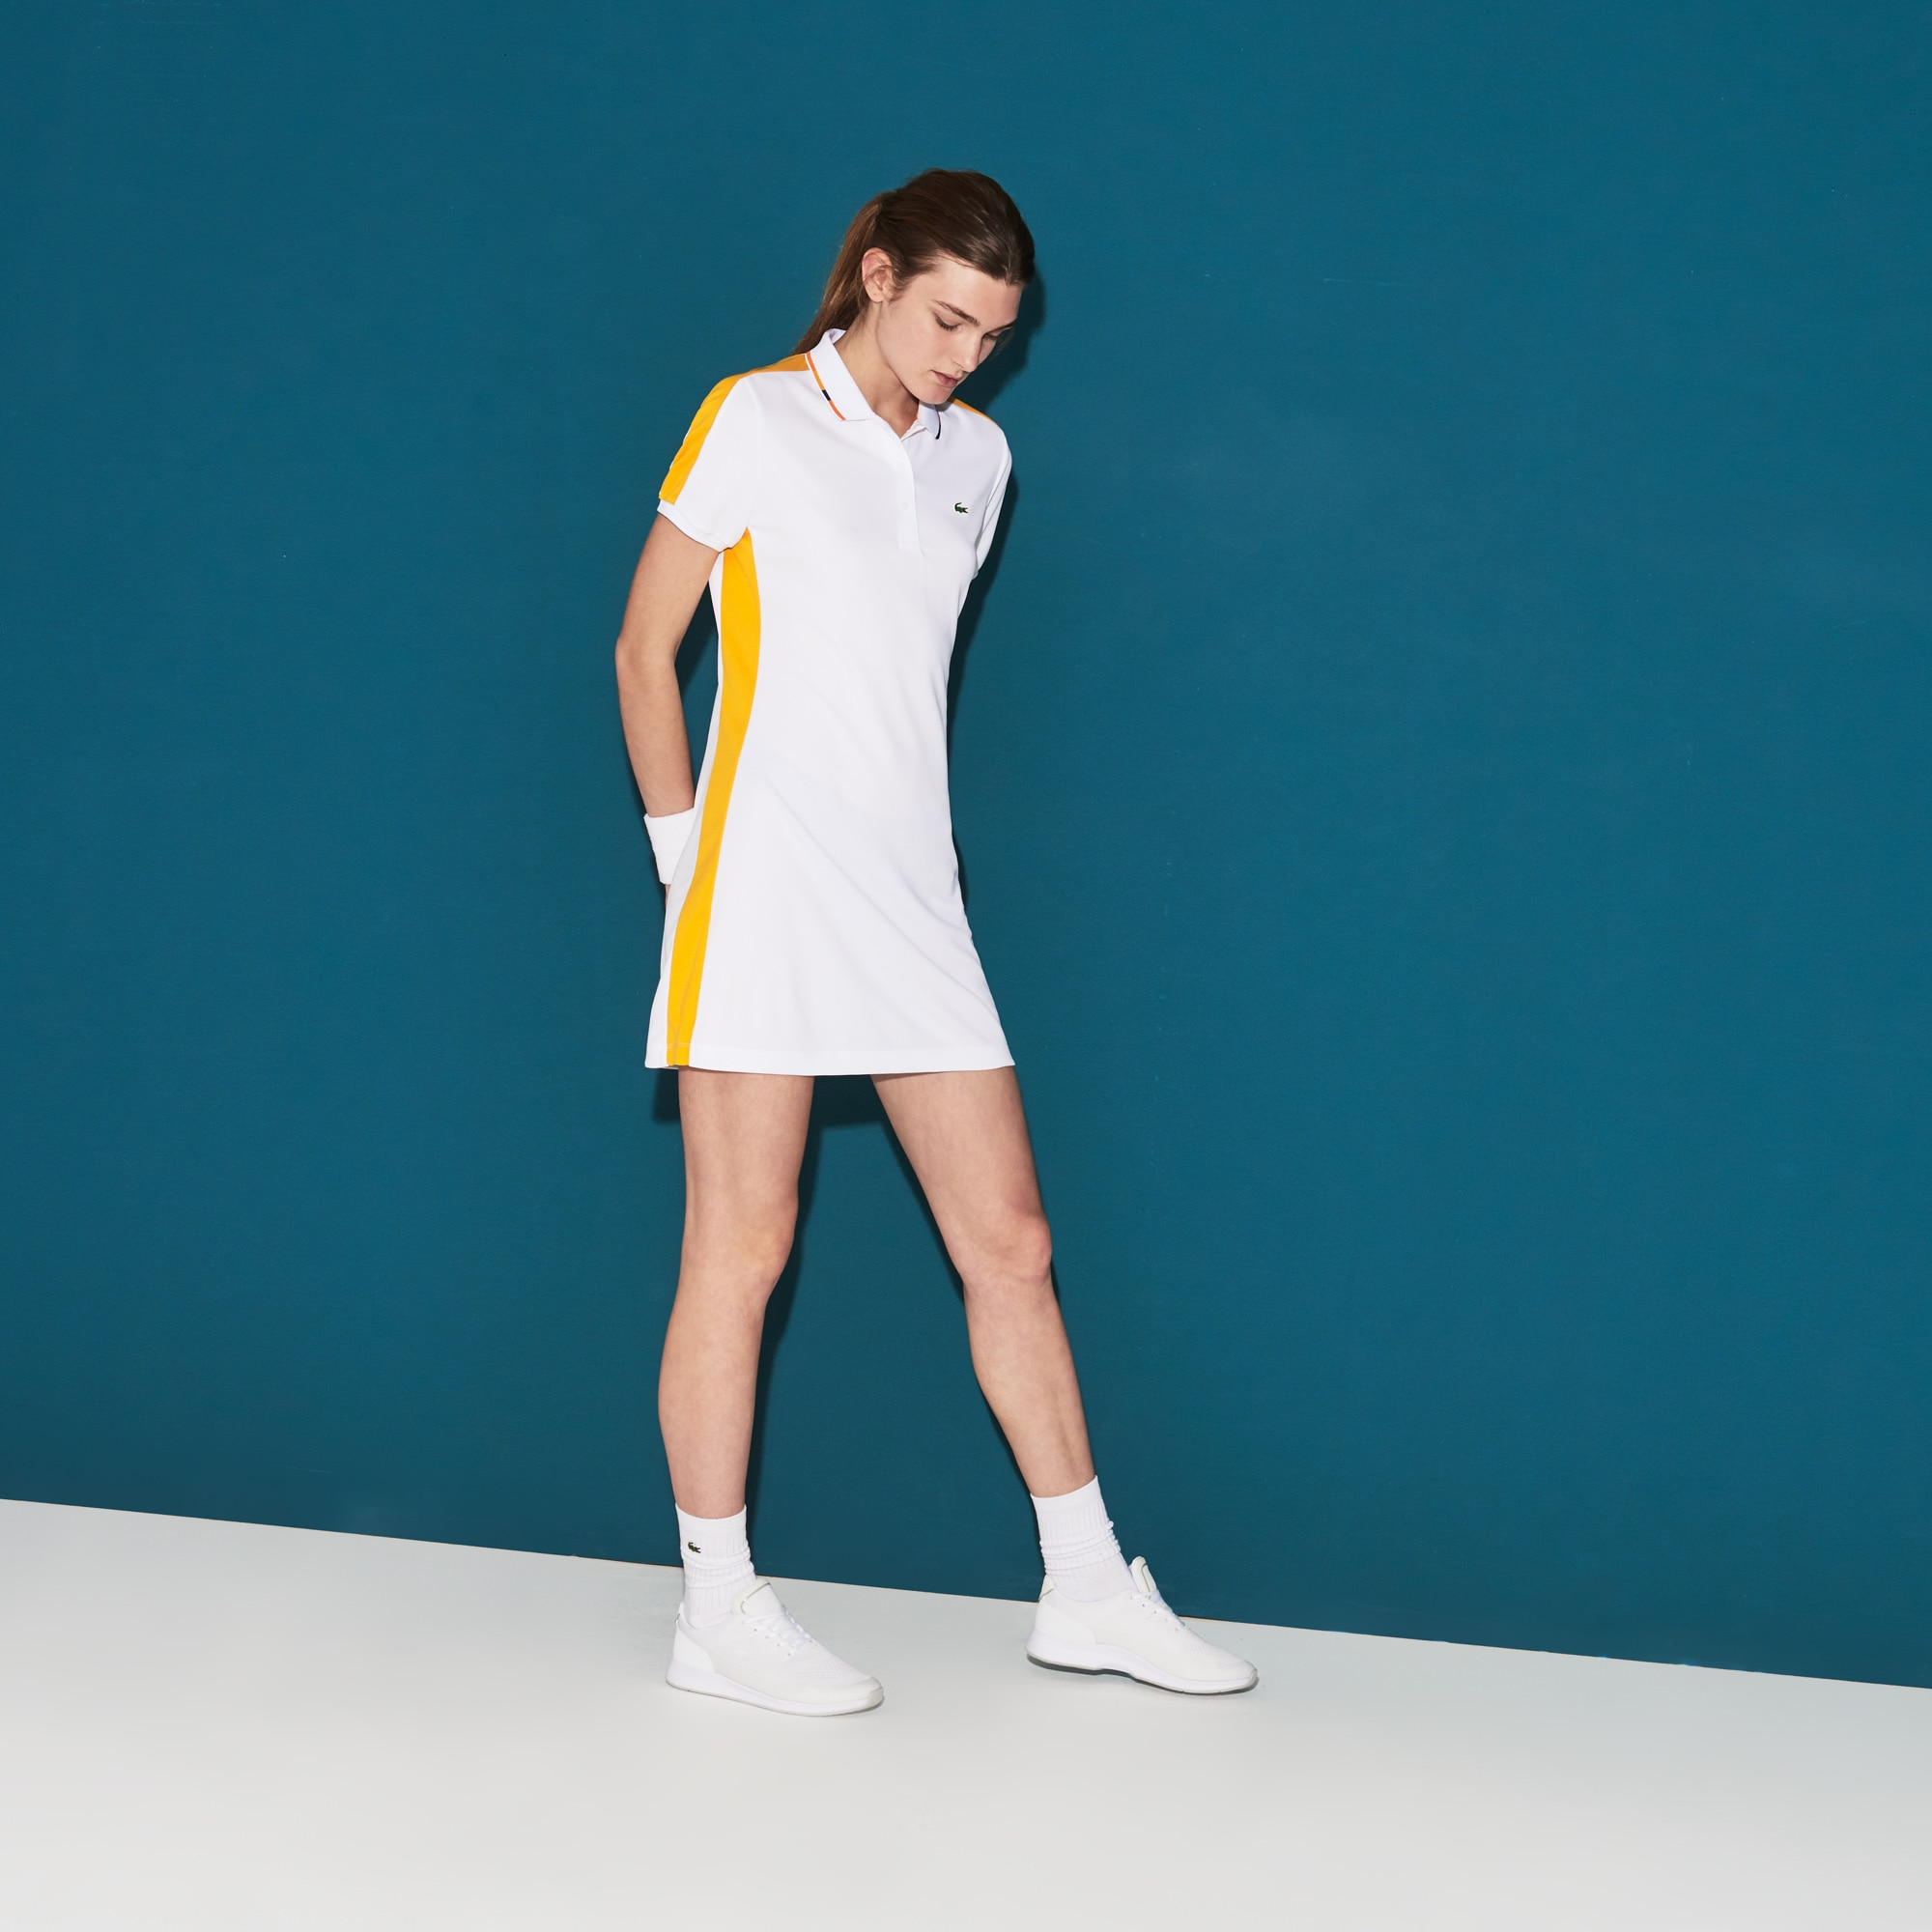 Women's Lacoste SPORT Contrast Bands Tech Piqué Tennis Polo Dress